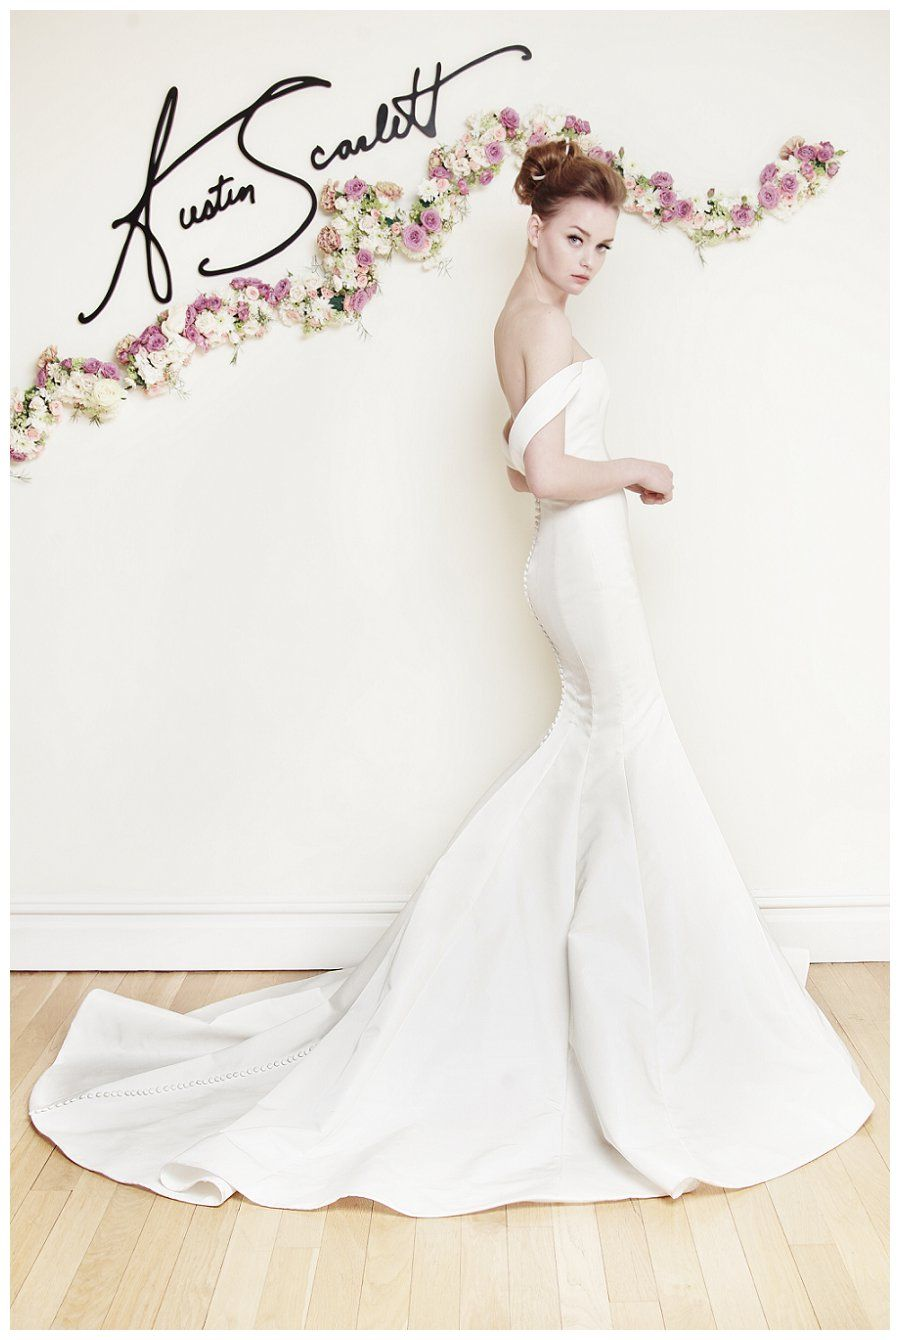 Wedding dress from the Austin Scarlett Spring 2016 Bridal Collection.